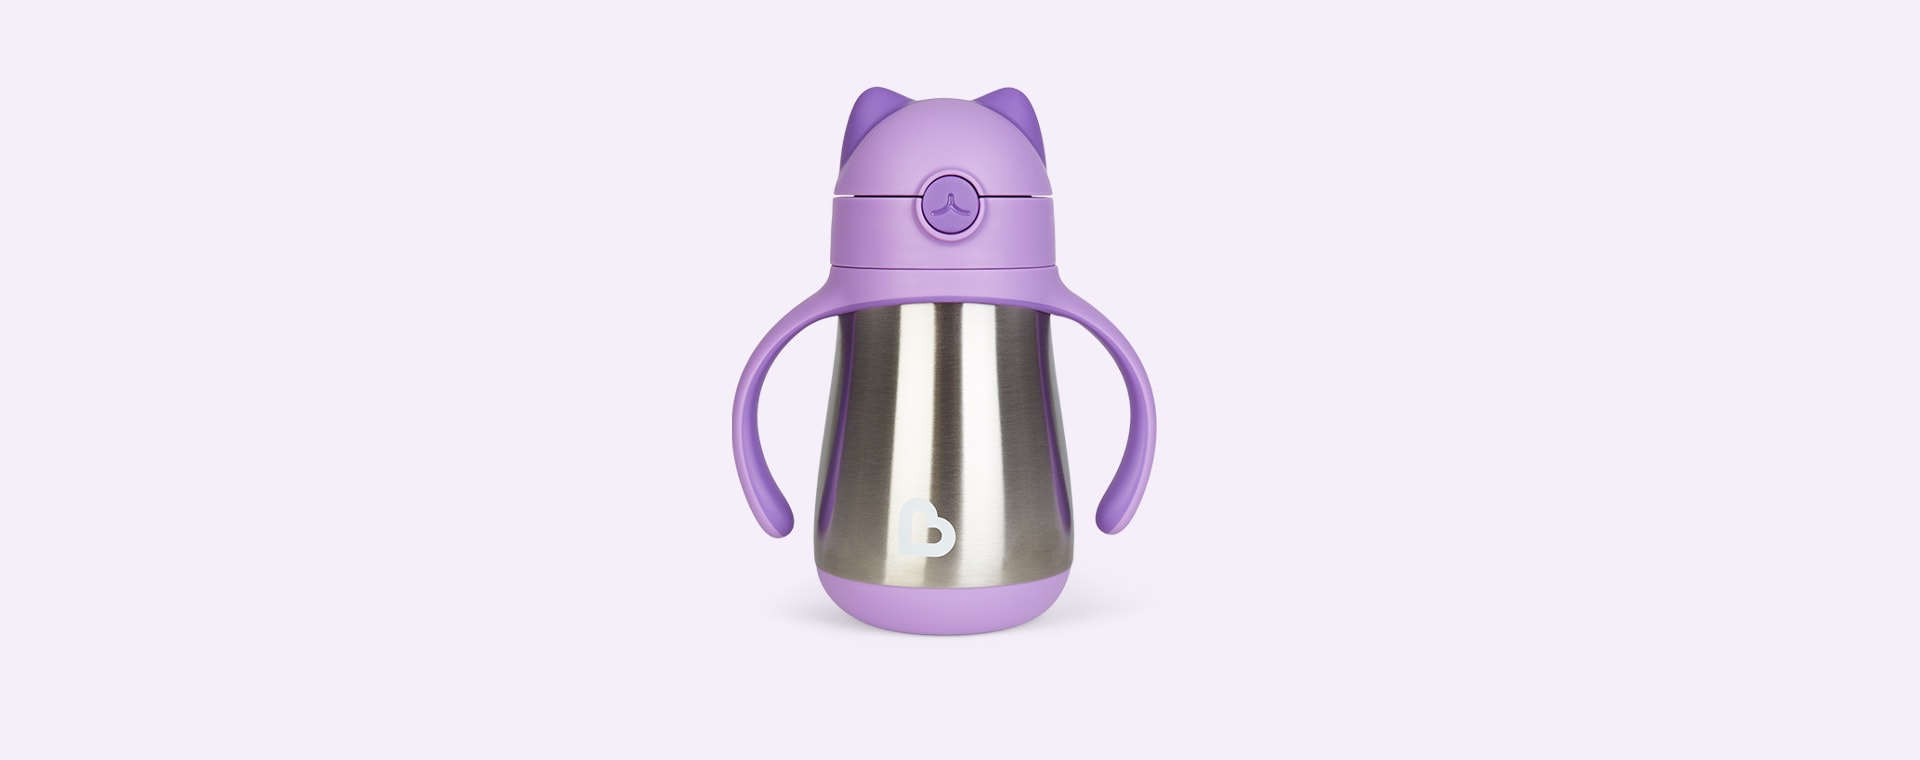 Purple Munchkin Cool Cat Stainless Steel Straw Cup